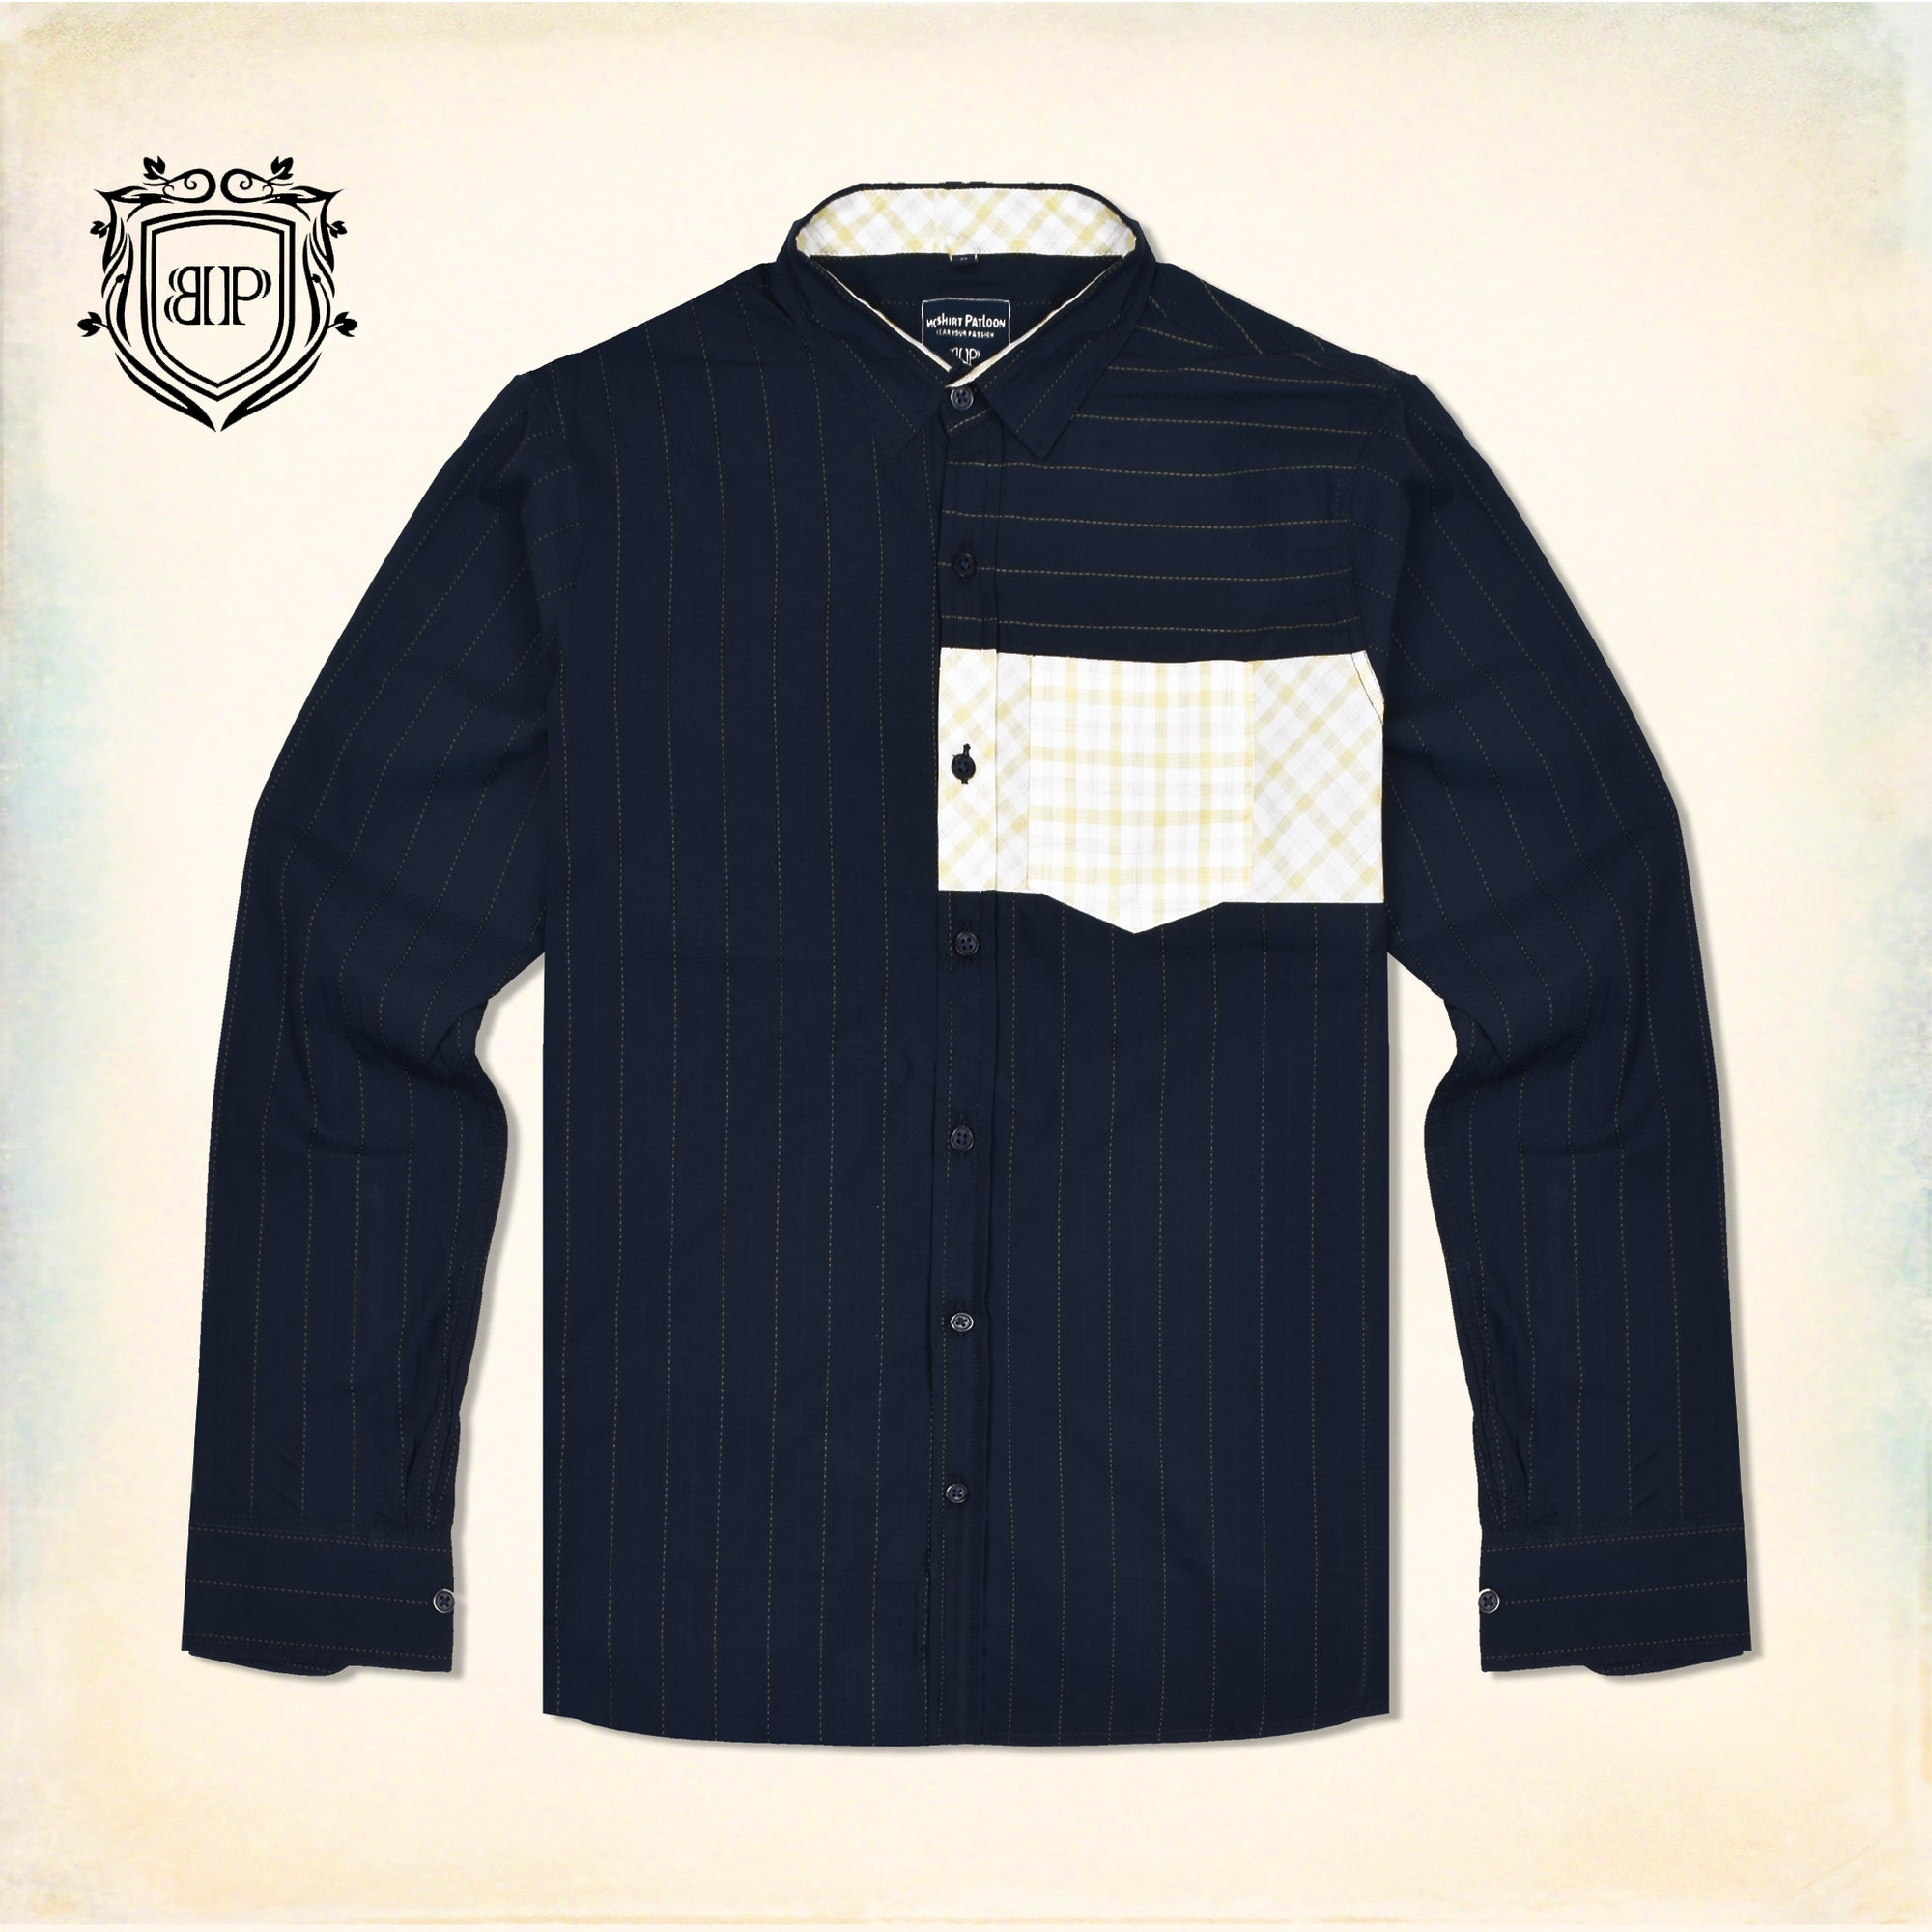 brandsego - Bushirt Patloon MADRES BLUE Casual Shirt For Men-NA1144